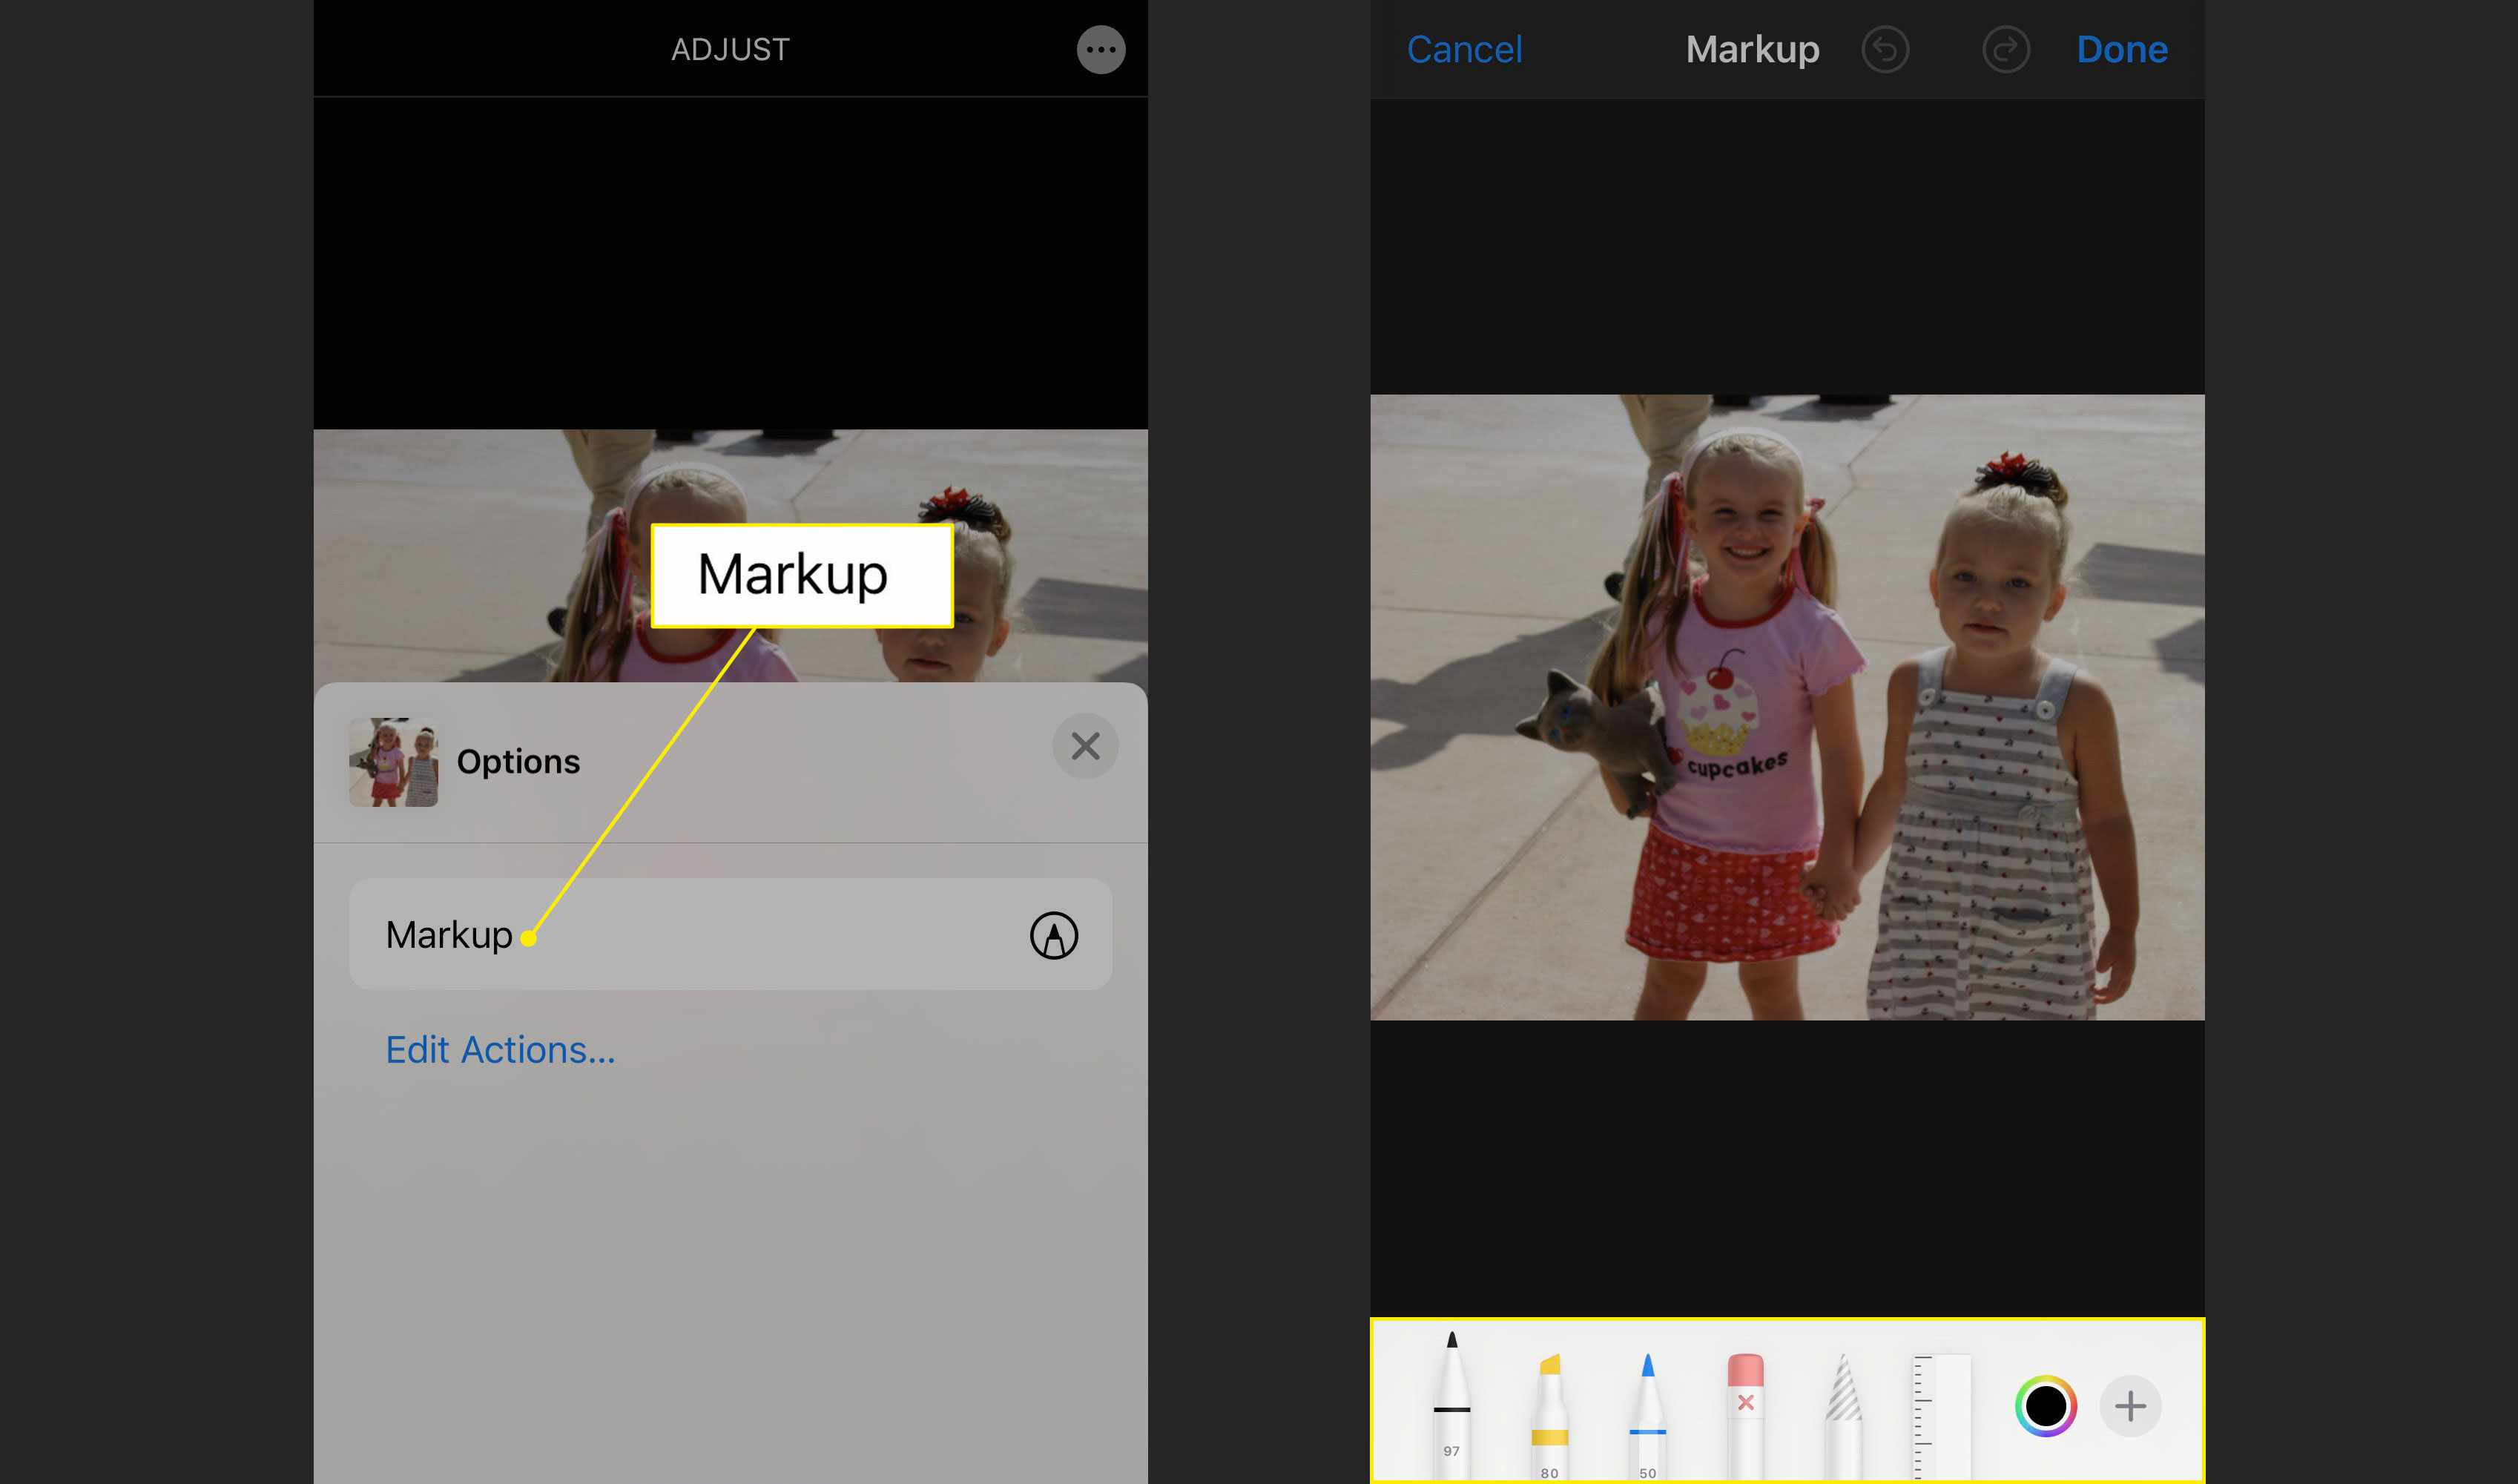 The Markup option and tools in Photos